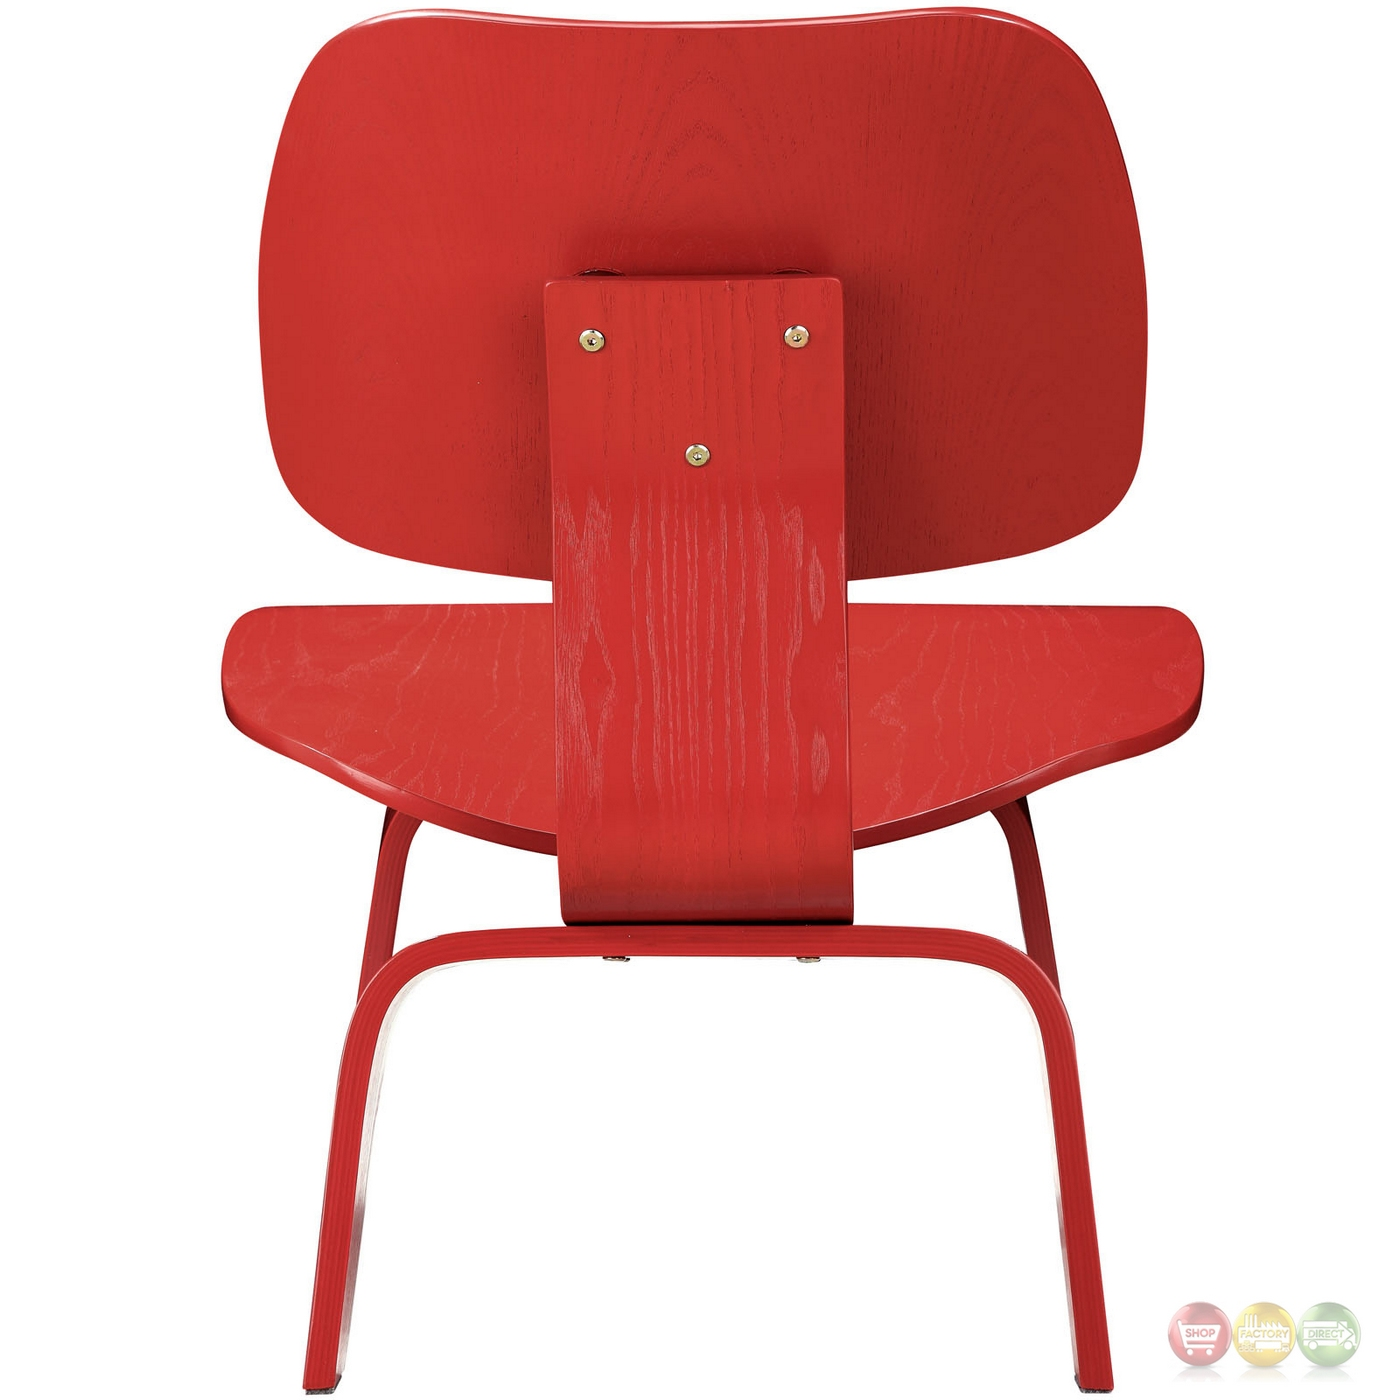 Fathom Contemporary Wood Panel Lounge Chair With Curved Seat Red